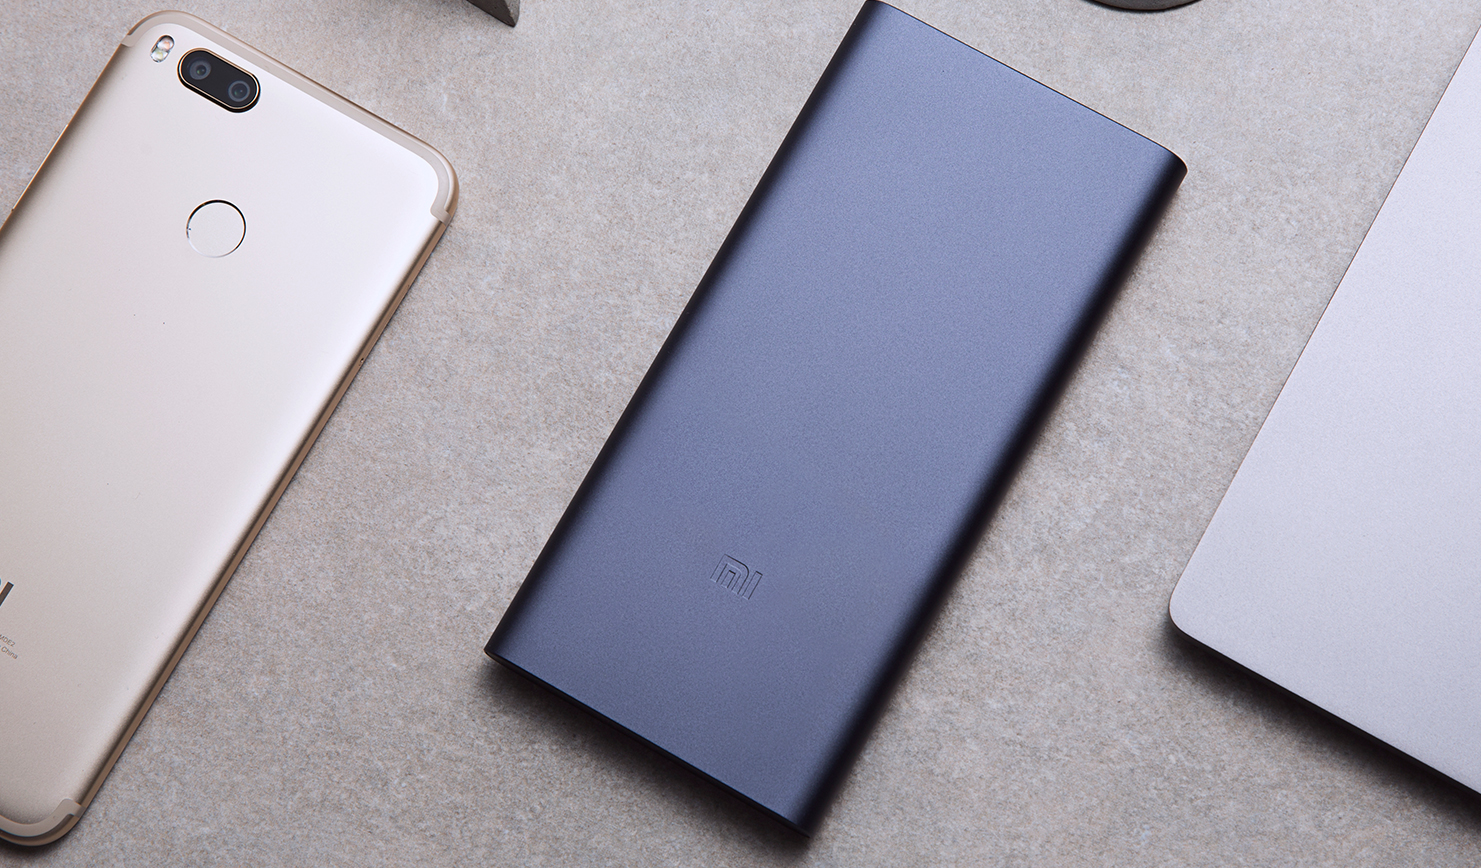 how to improvement xiaomi power bank lifespan